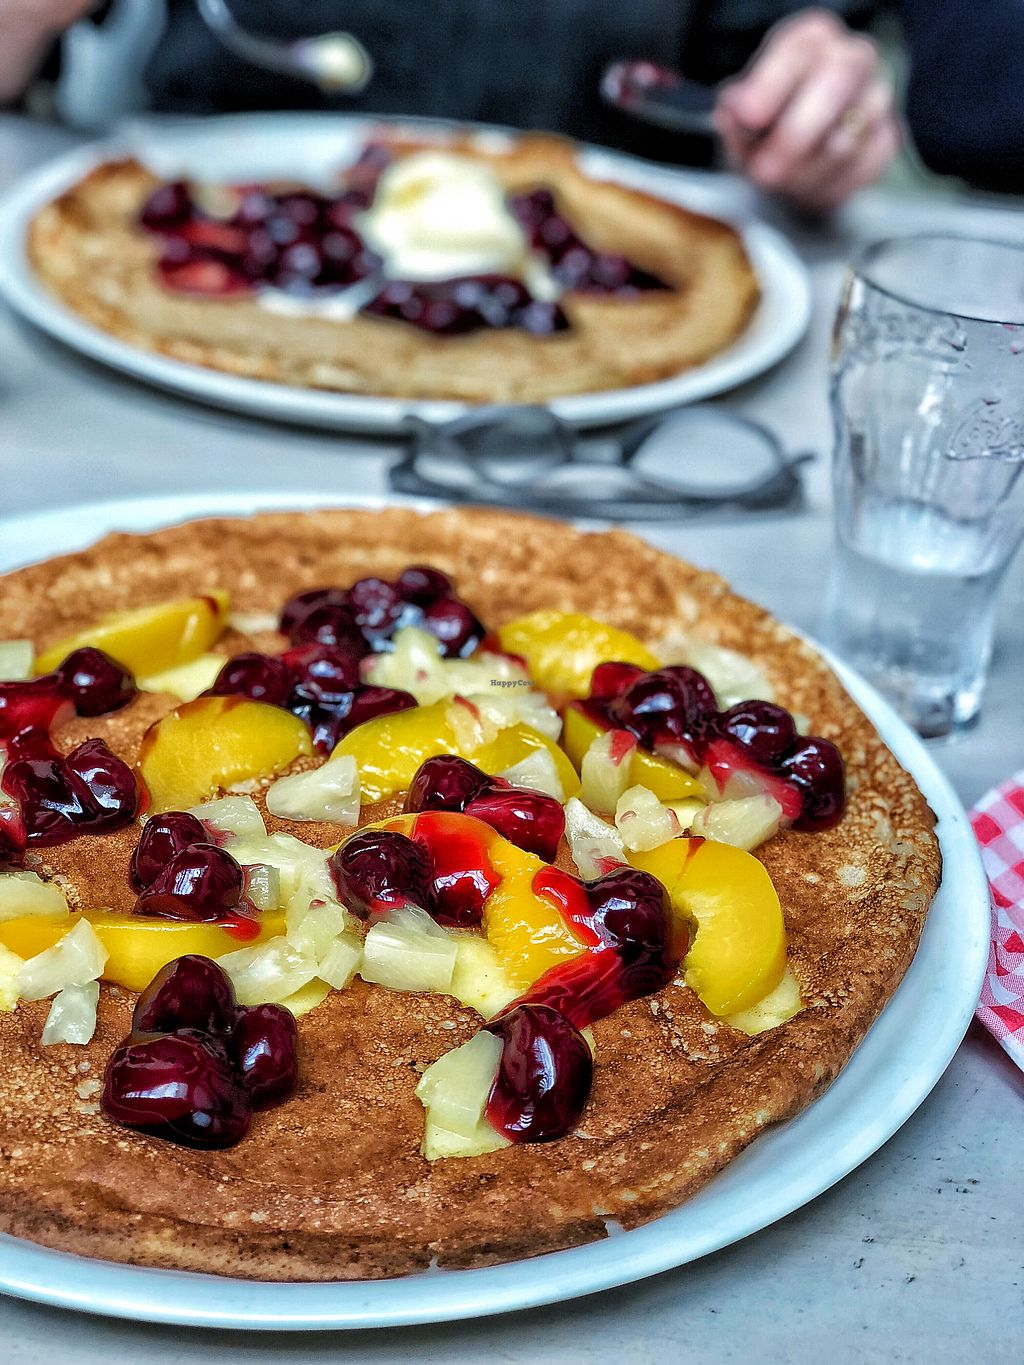 """Photo of Pannekoekenhuis Vierwegen  by <a href=""""/members/profile/annaxxsophie"""">annaxxsophie</a> <br/>Vegan pancake with fruit  <br/> February 11, 2018  - <a href='/contact/abuse/image/85027/357853'>Report</a>"""